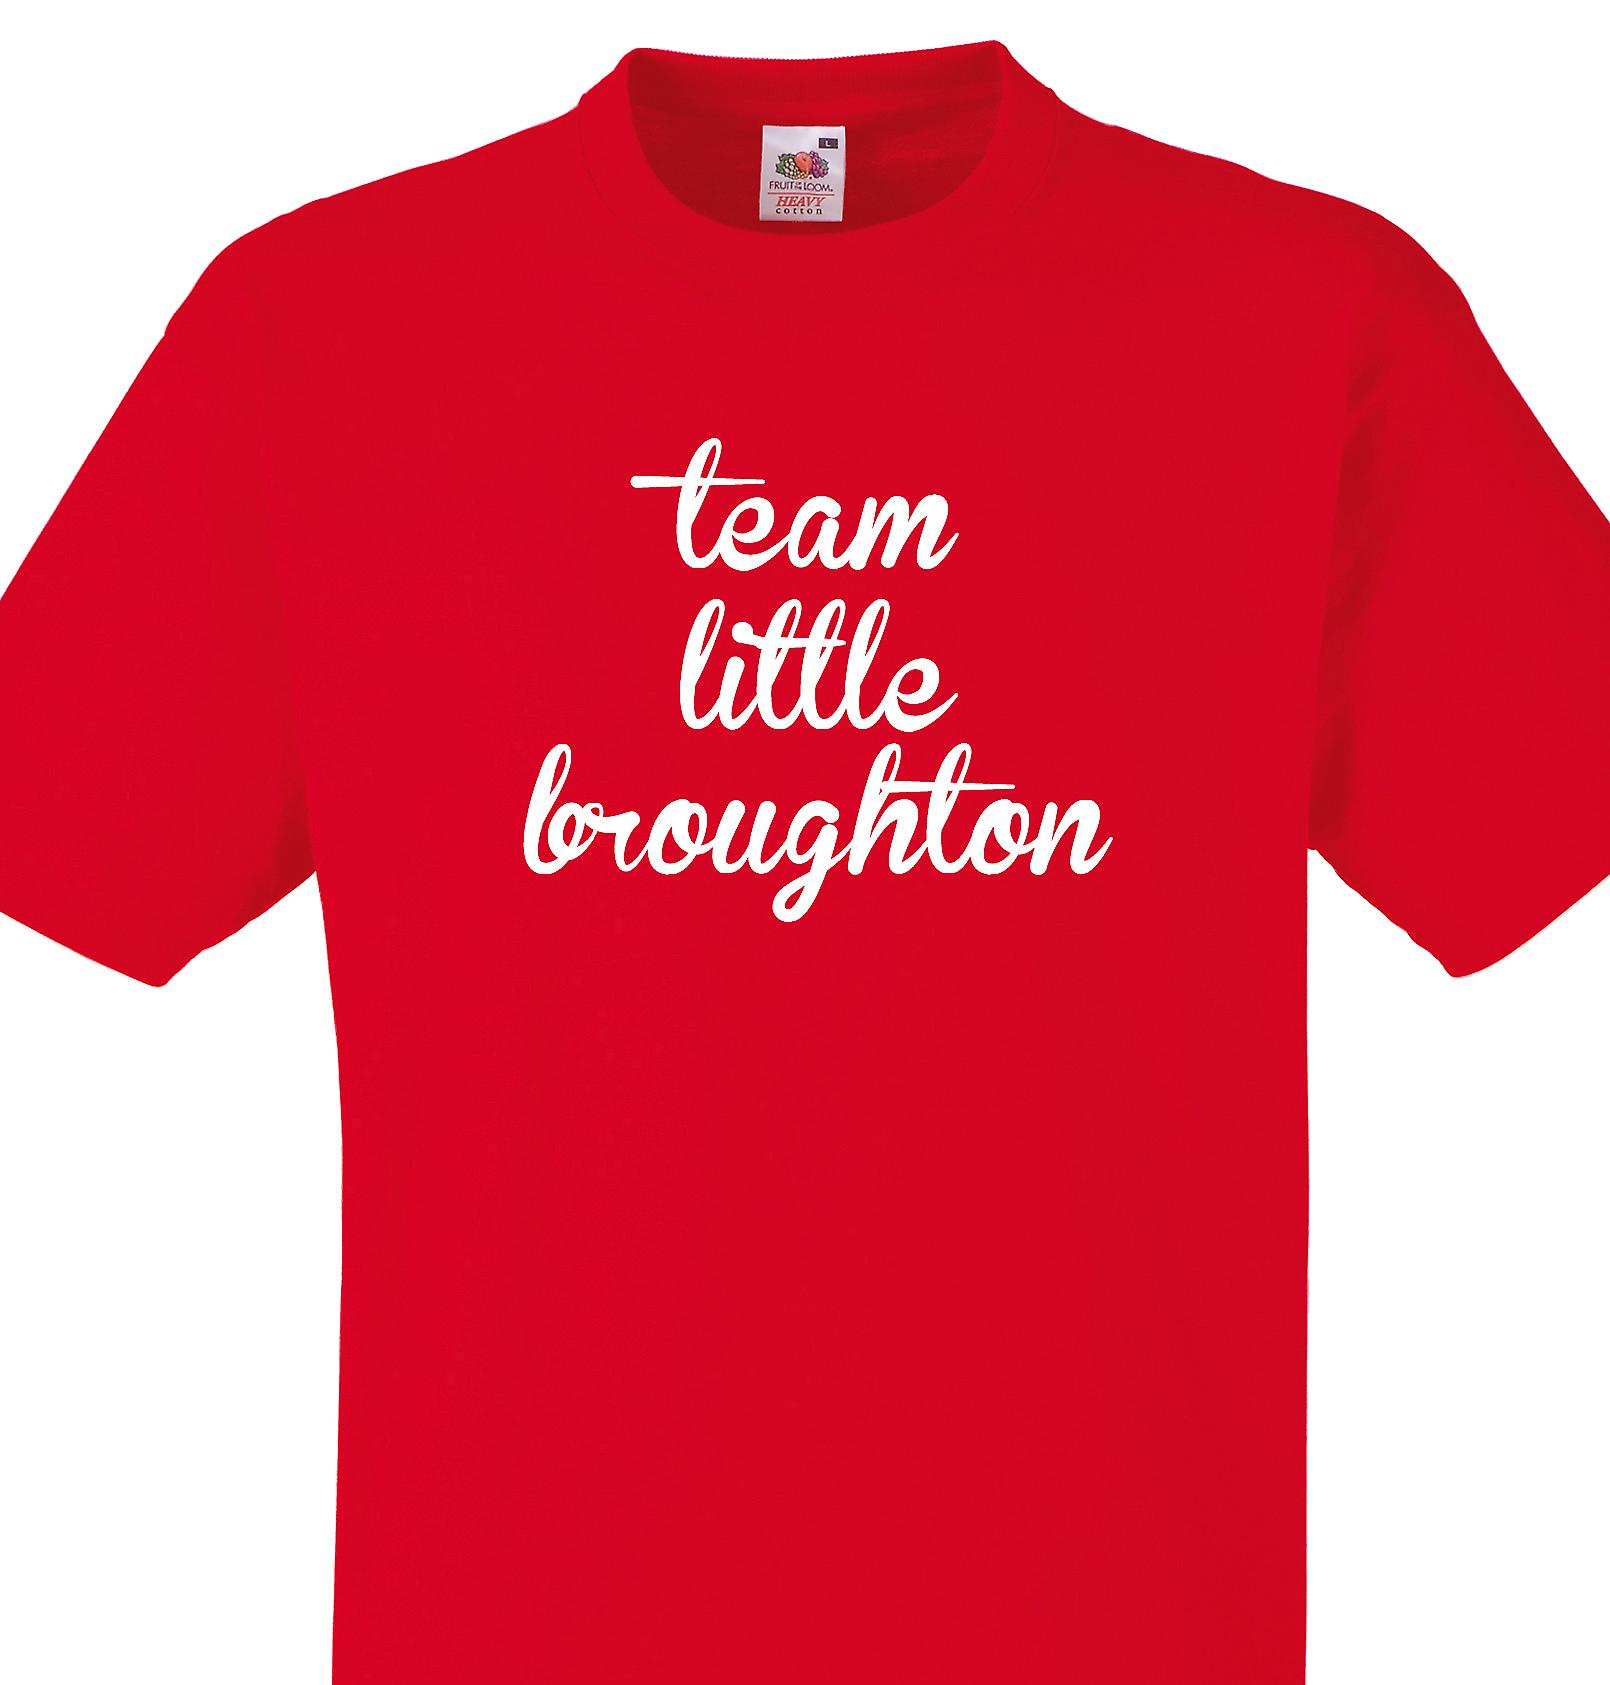 Team Little broughton Red T shirt